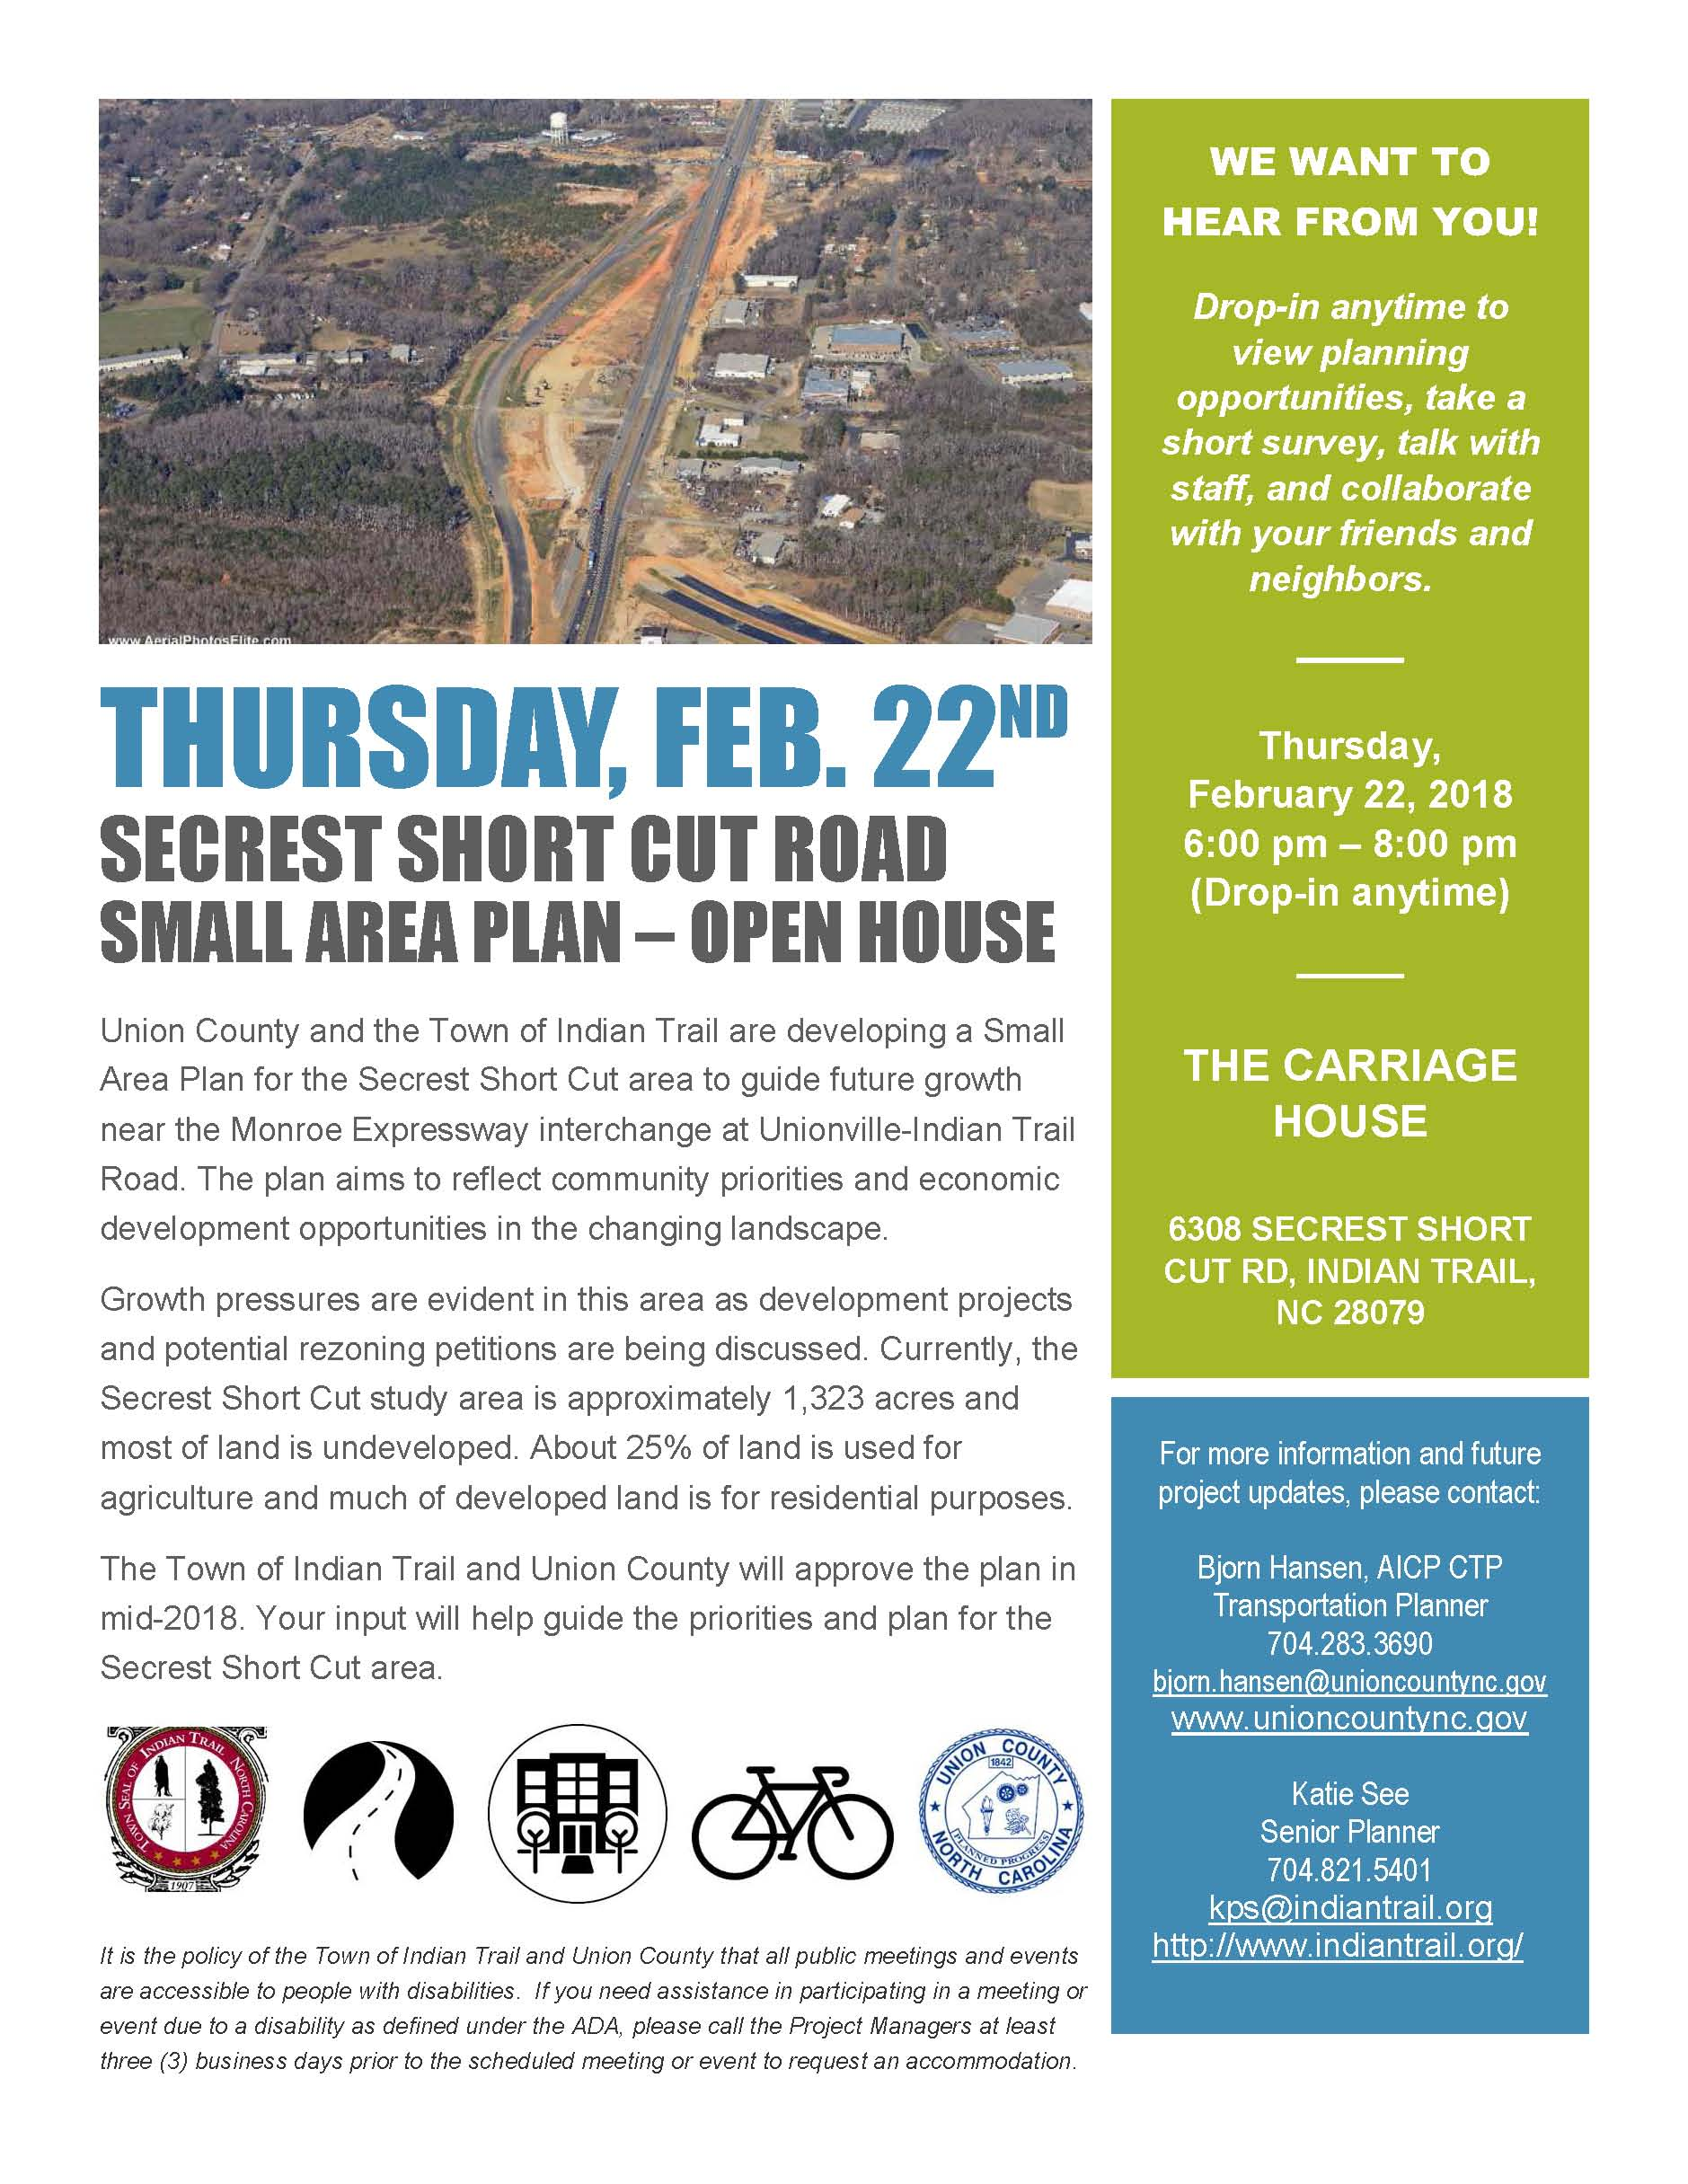 Secrest Shortcut SAP - Open House Flyer